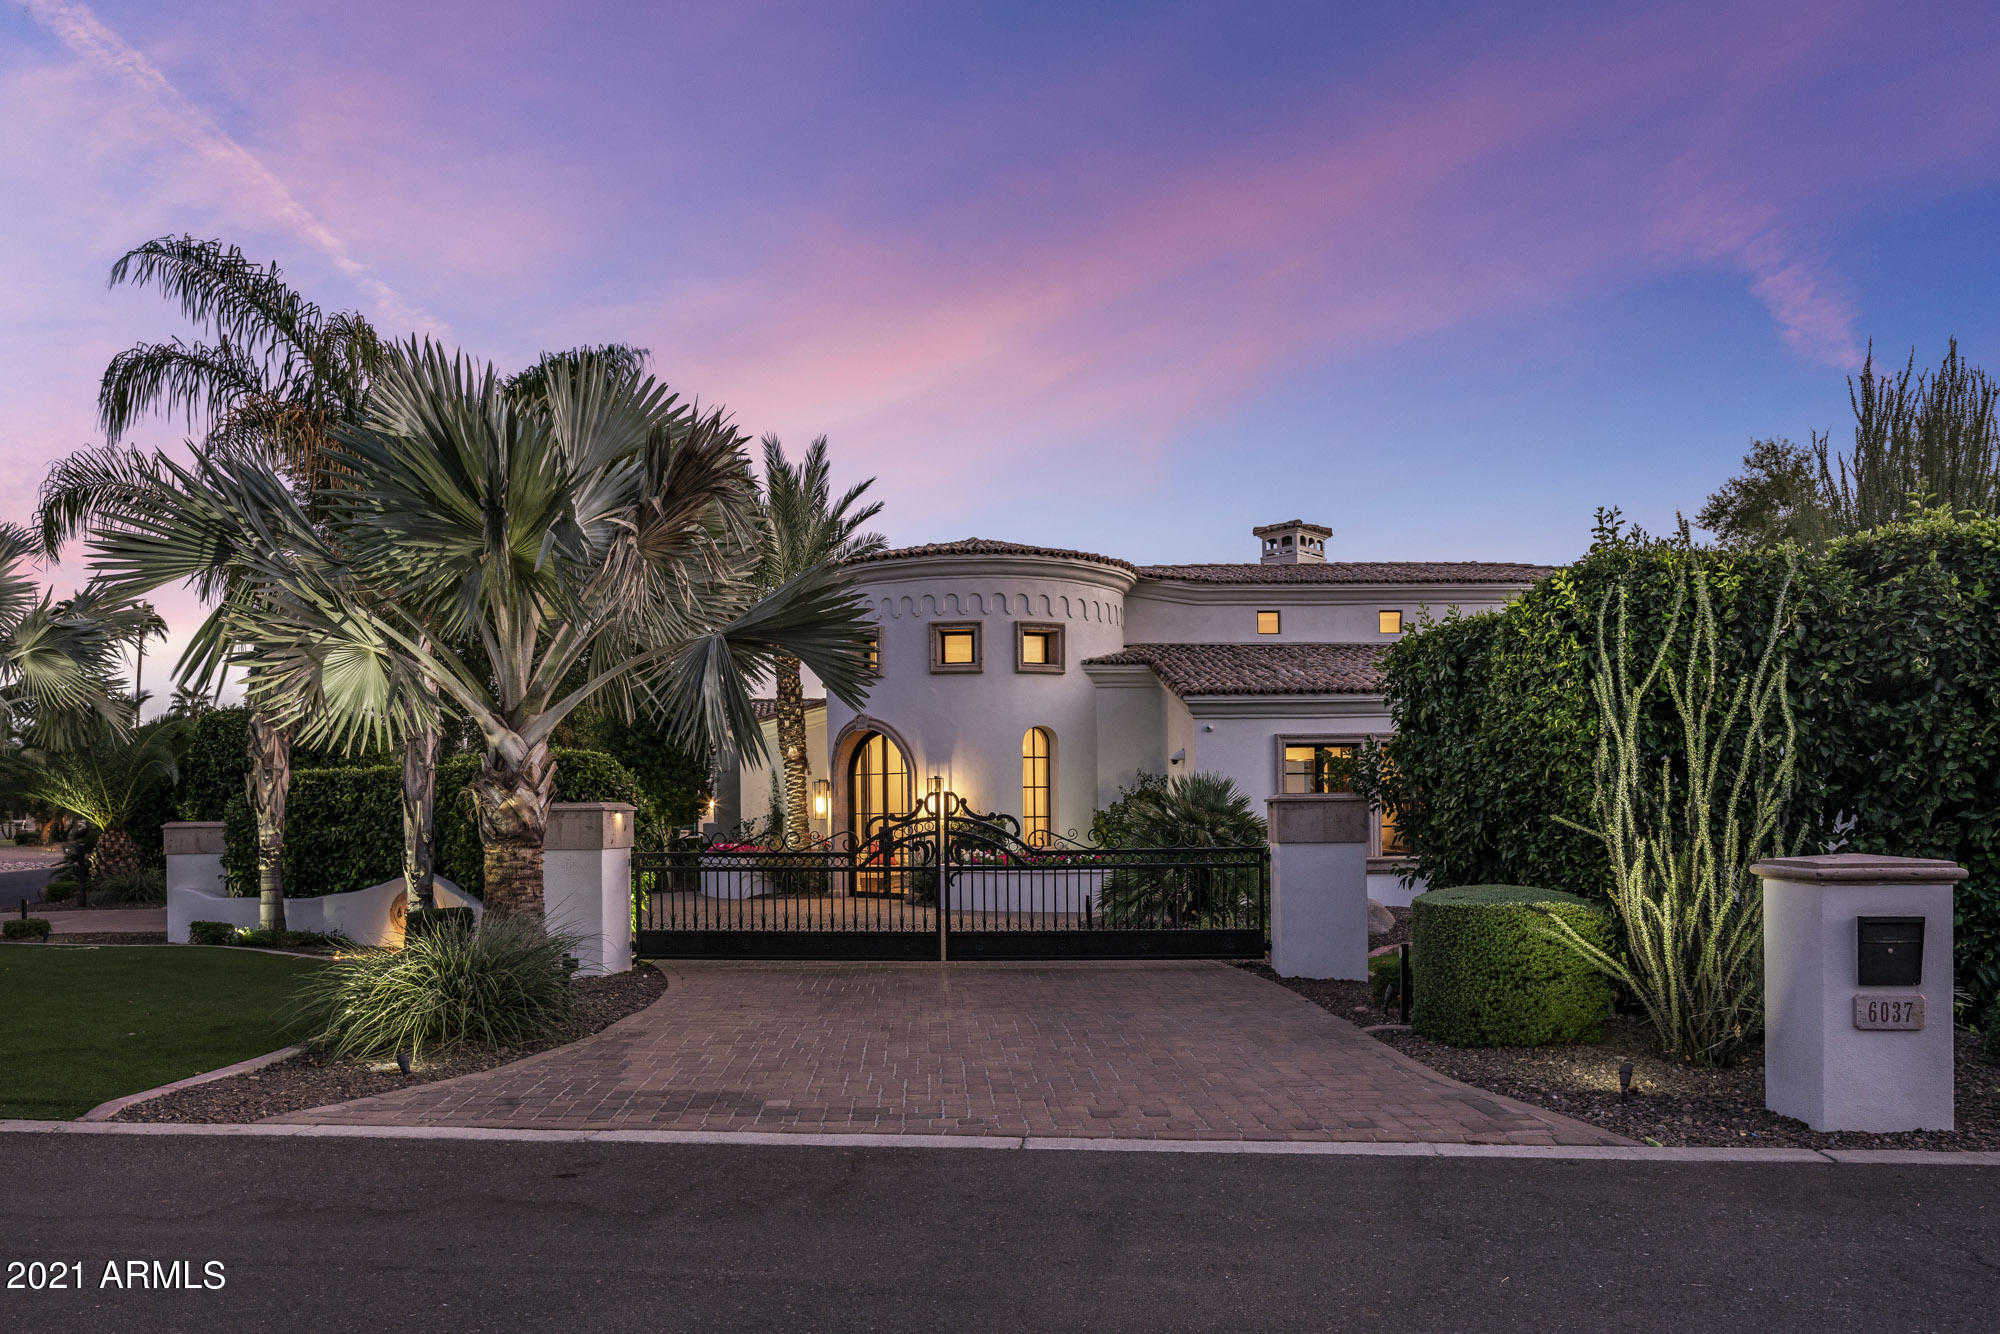 $4,250,000 - 5Br/7Ba - Home for Sale in Lajolla Aces Ii, Paradise Valley